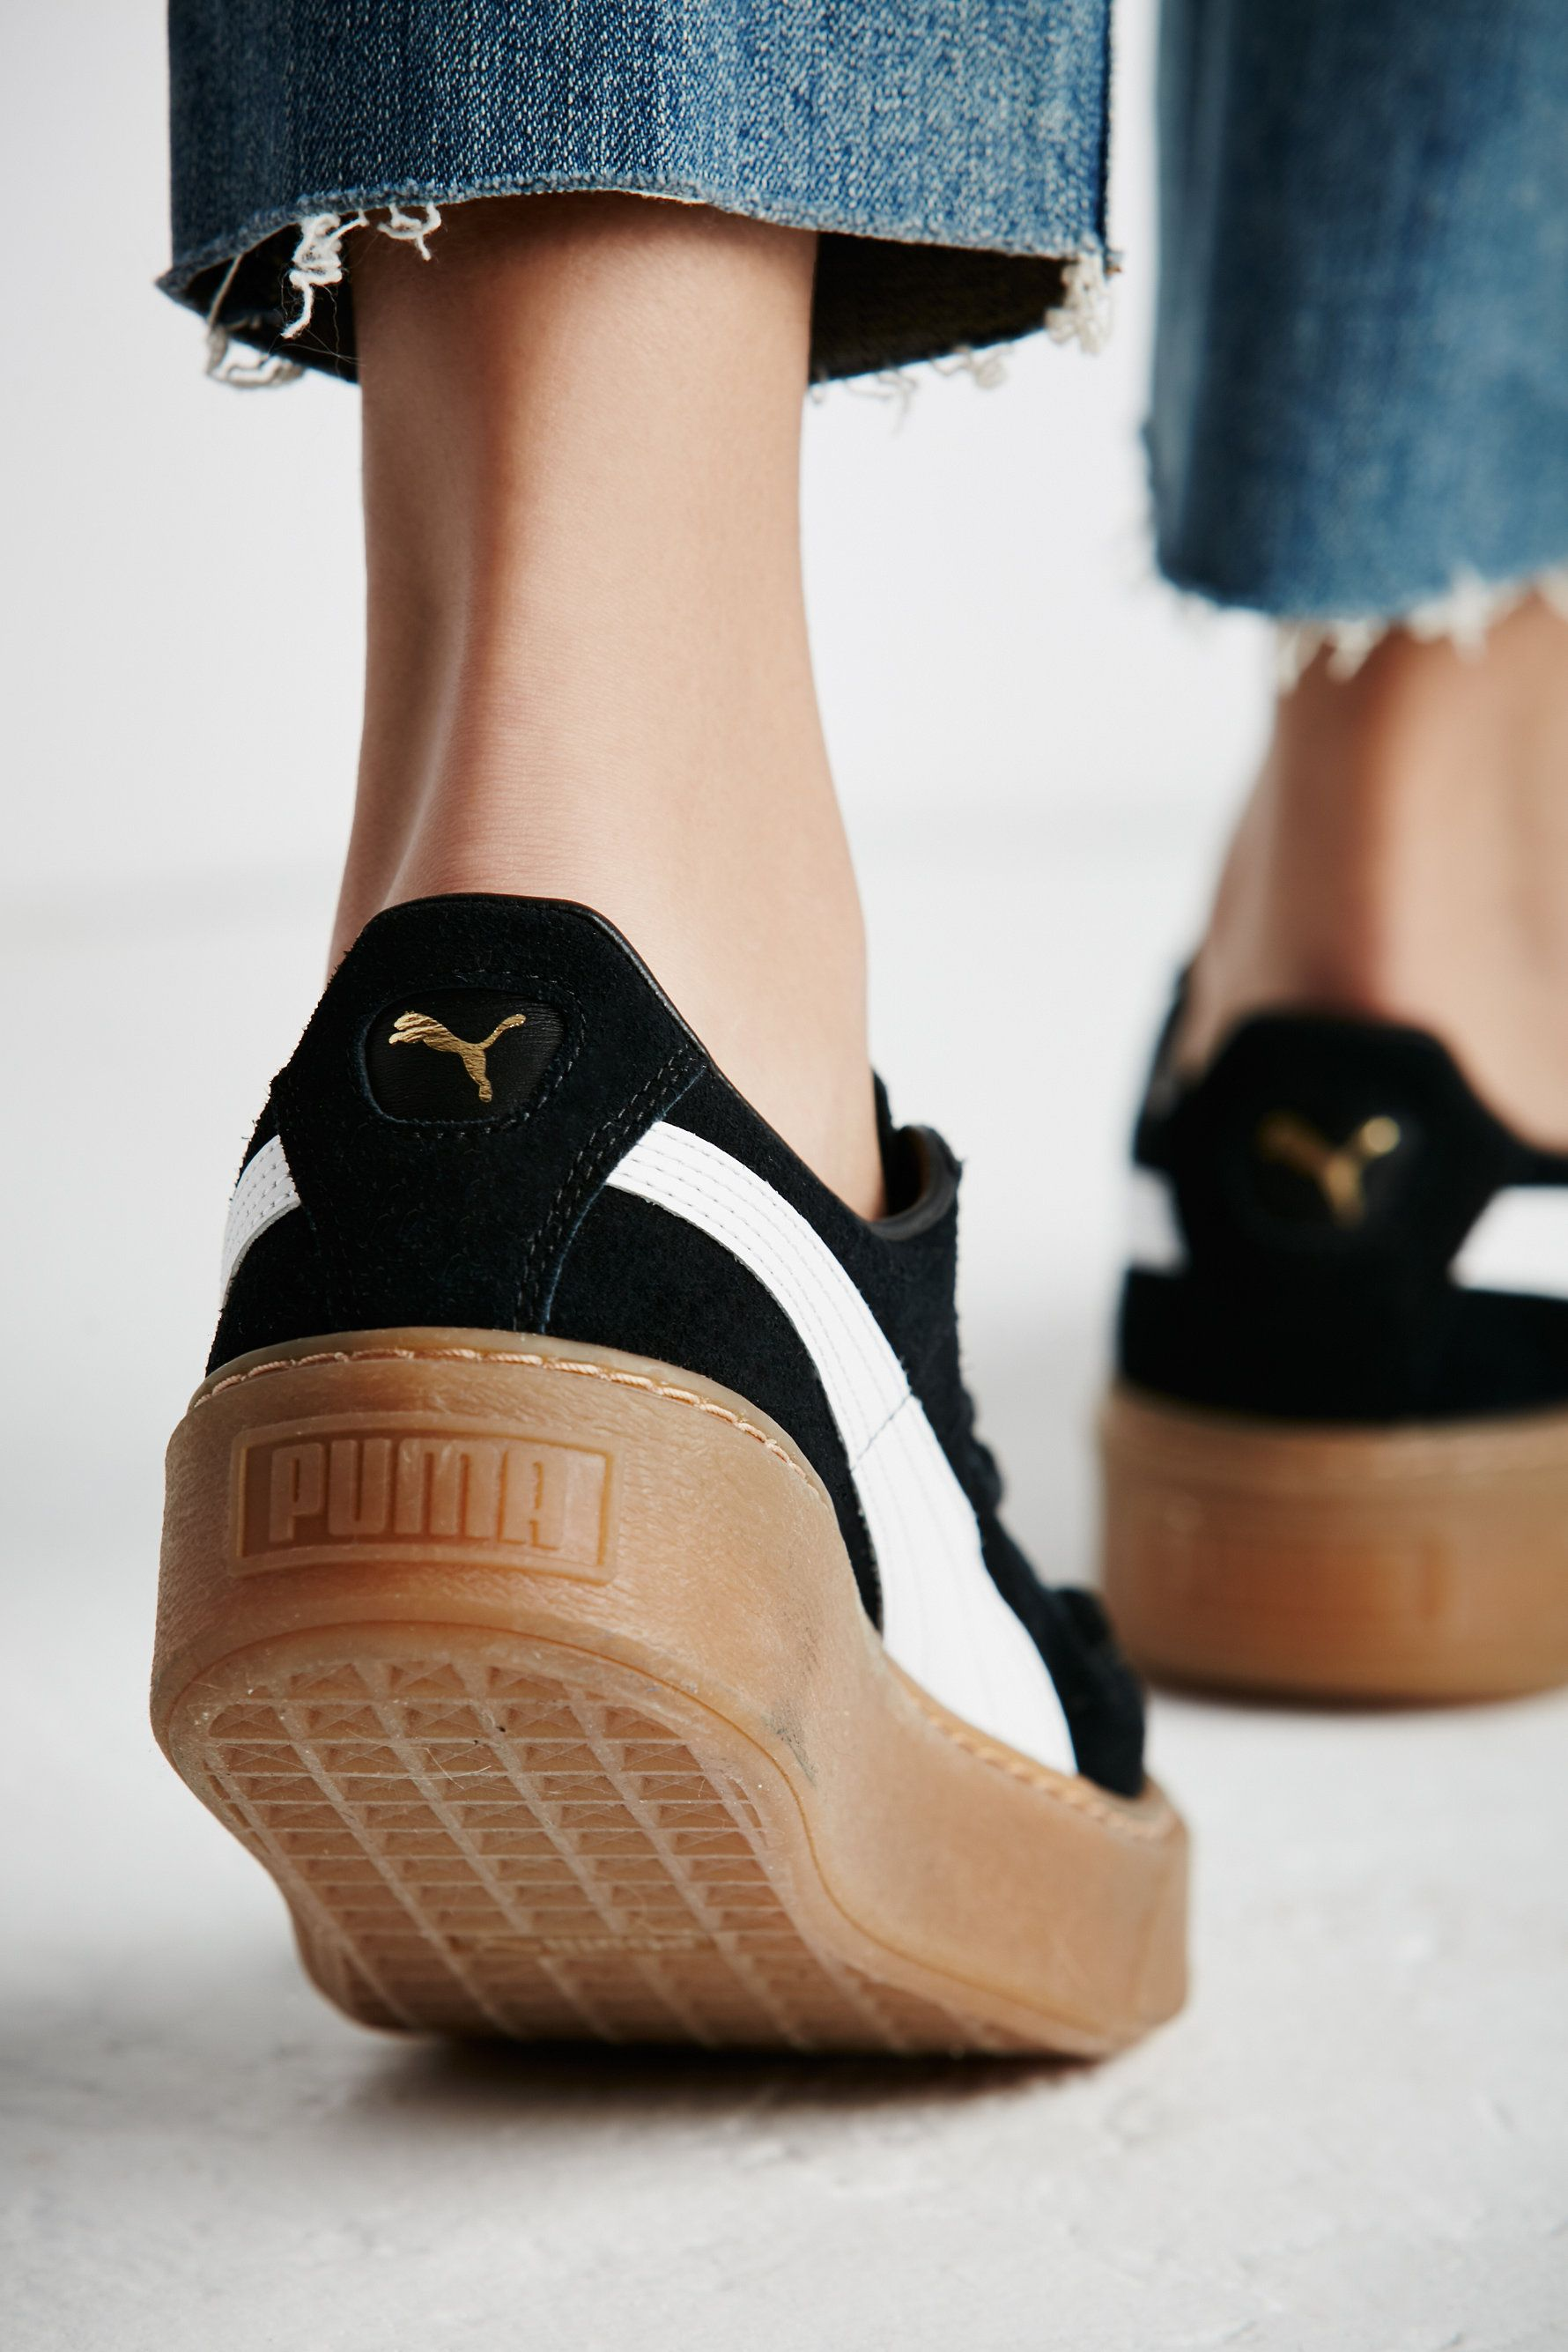 fd5595a2ee Suede Platform Core Sneakers | In a classic puma silhouette these casual  suede sneaks feature a contrasting rubber sole. Lace-ups with a rounded toe.